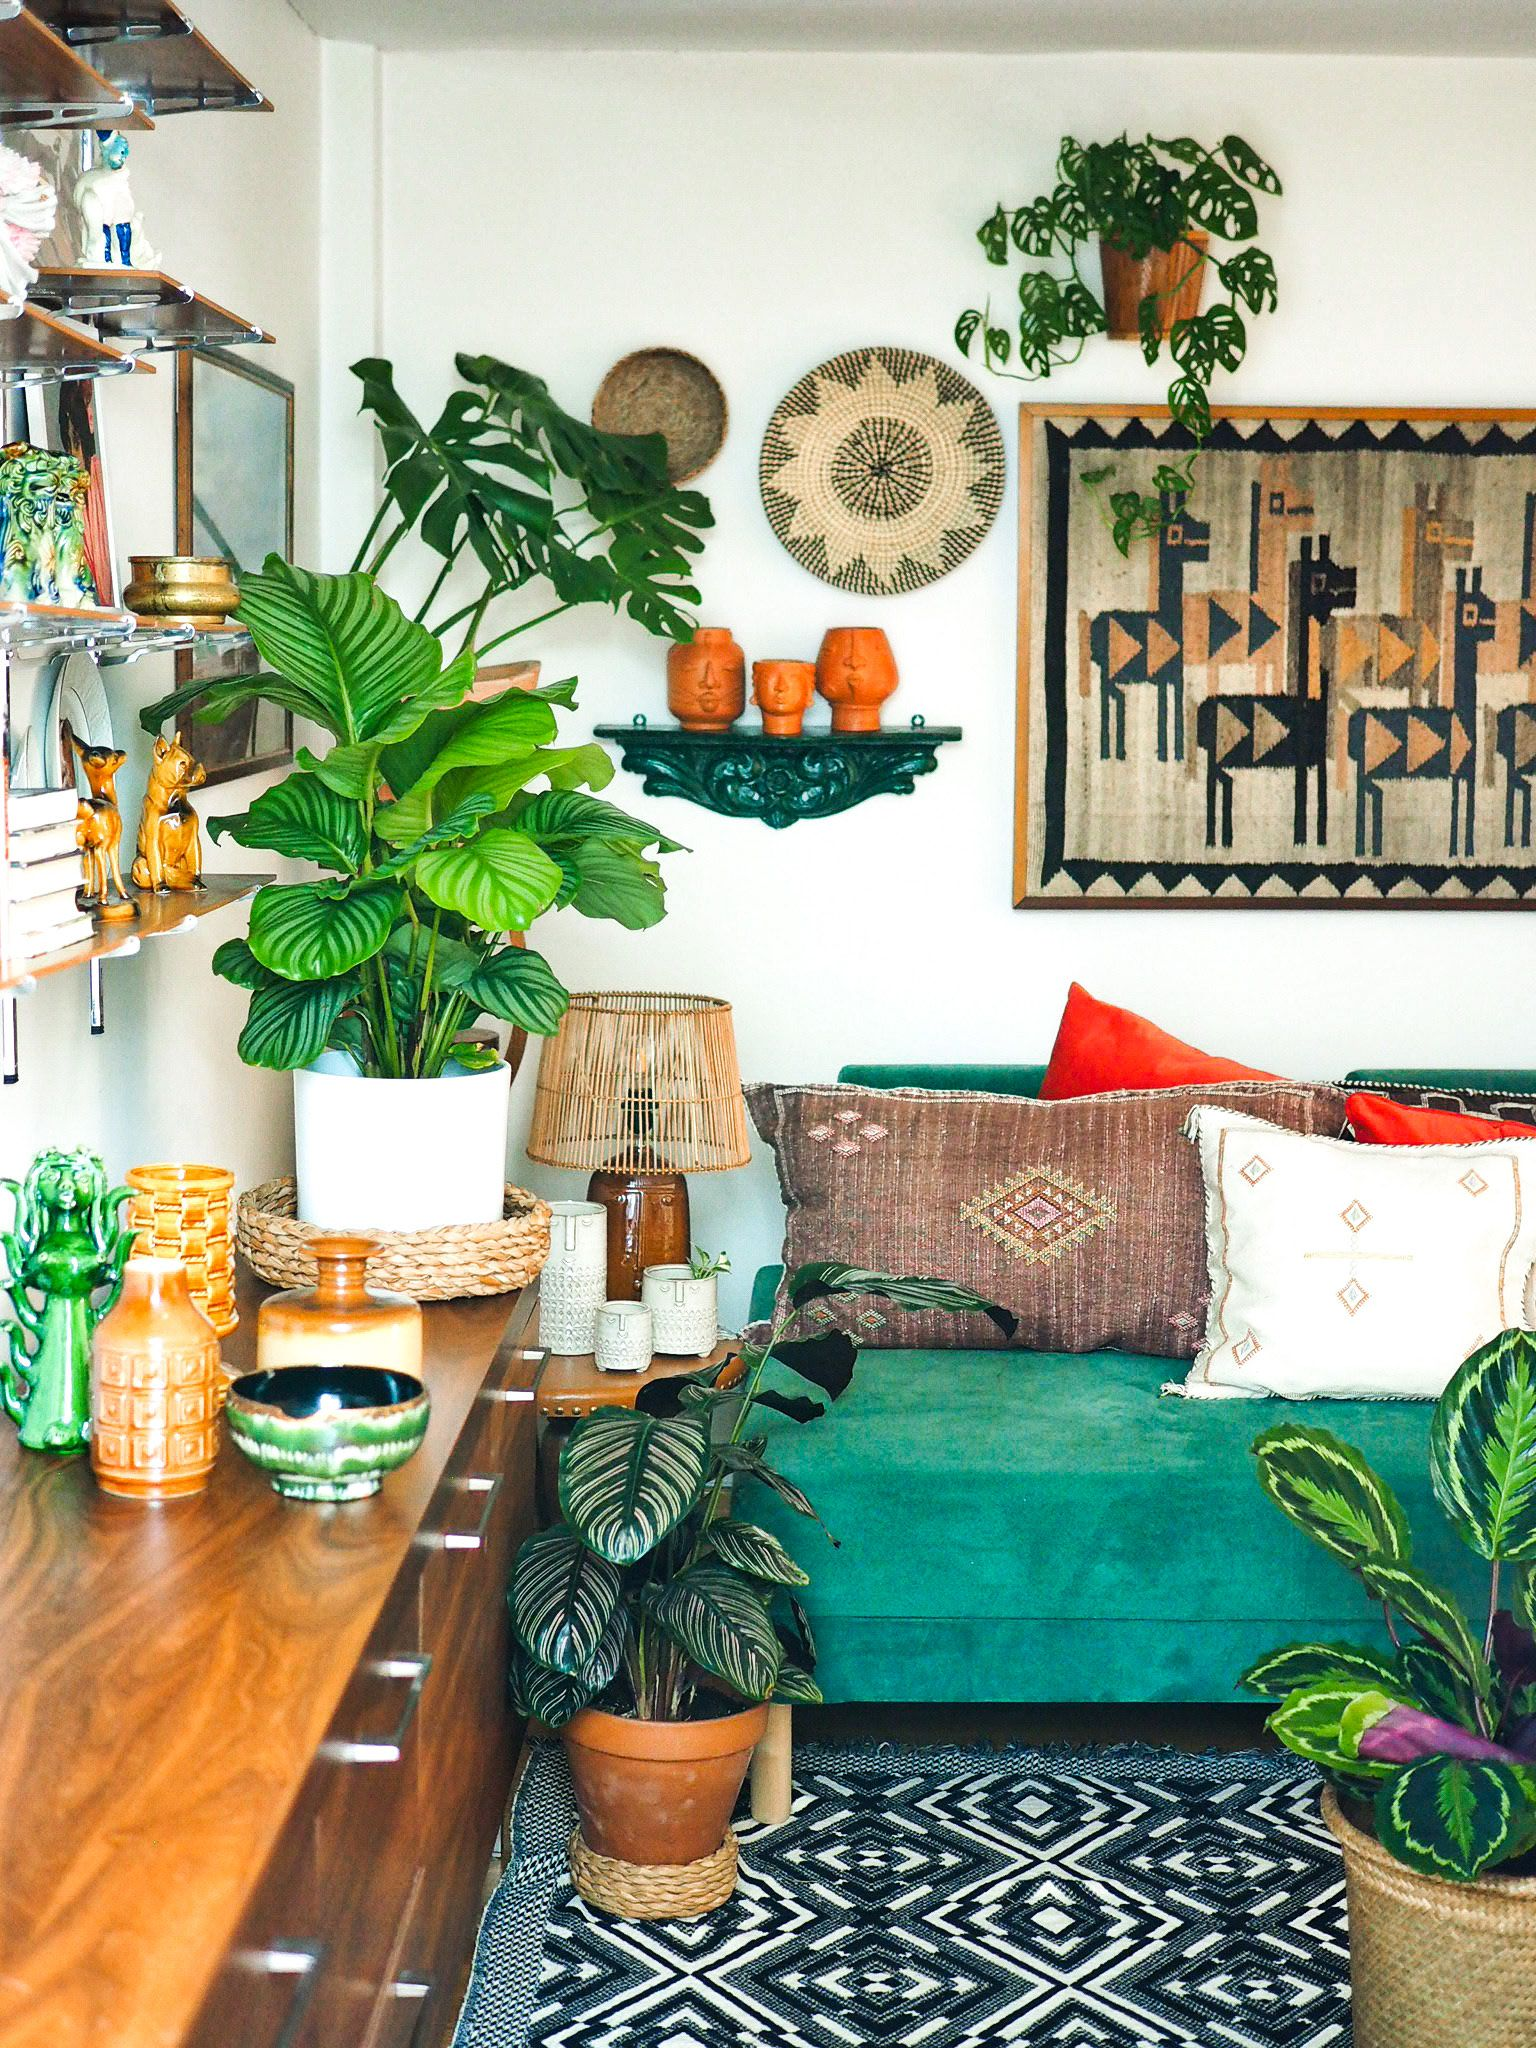 How to start an indoor garden at home and how to maintain it once you have one: